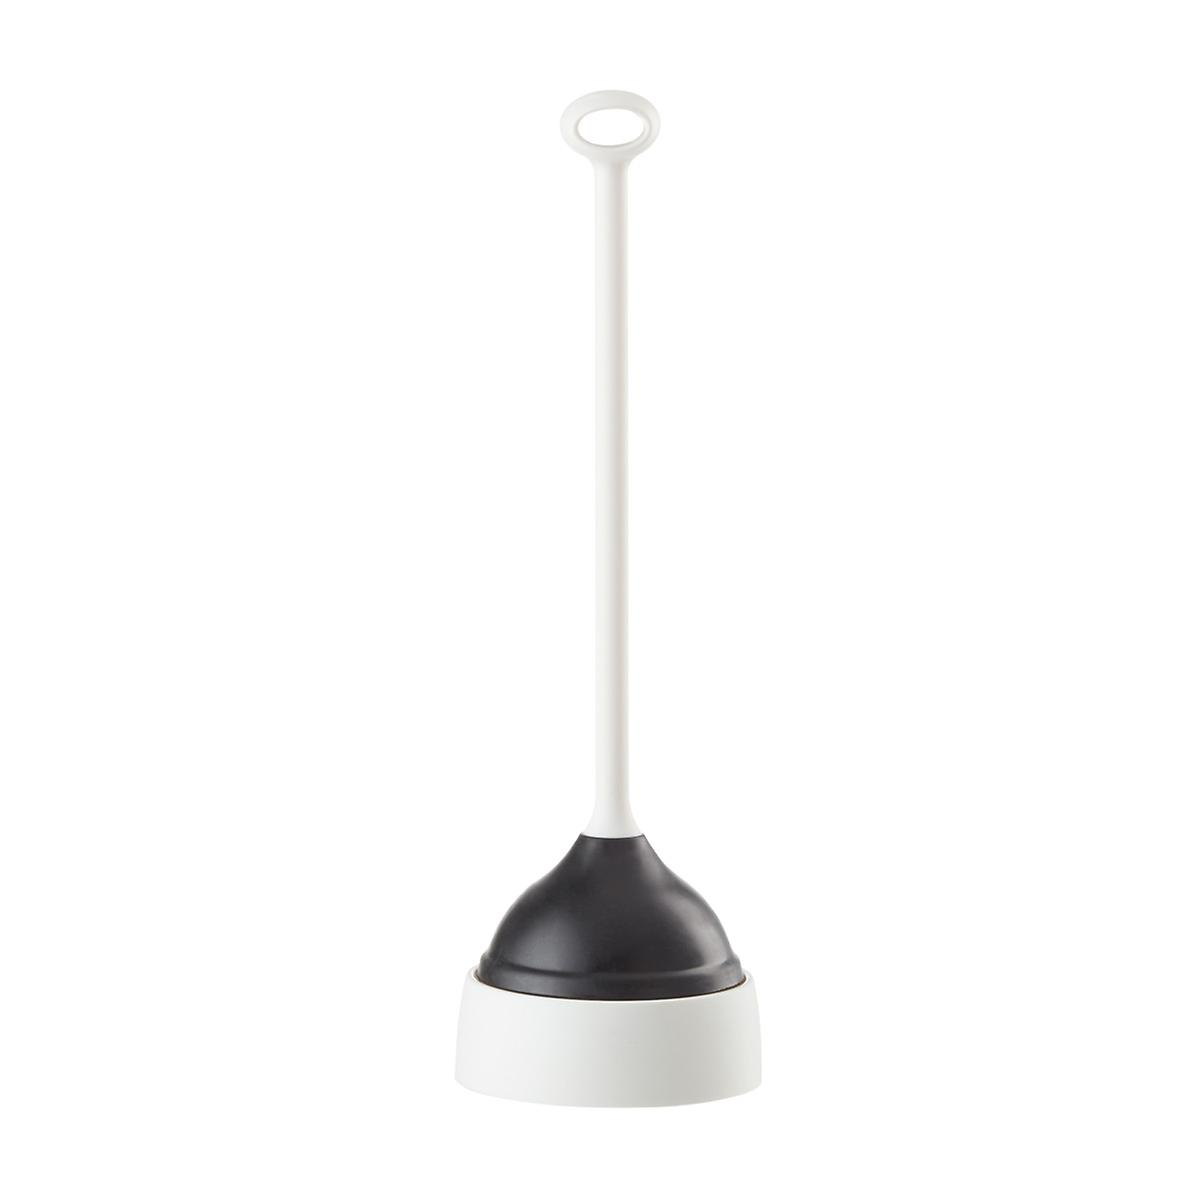 Casabella Plunger with Base